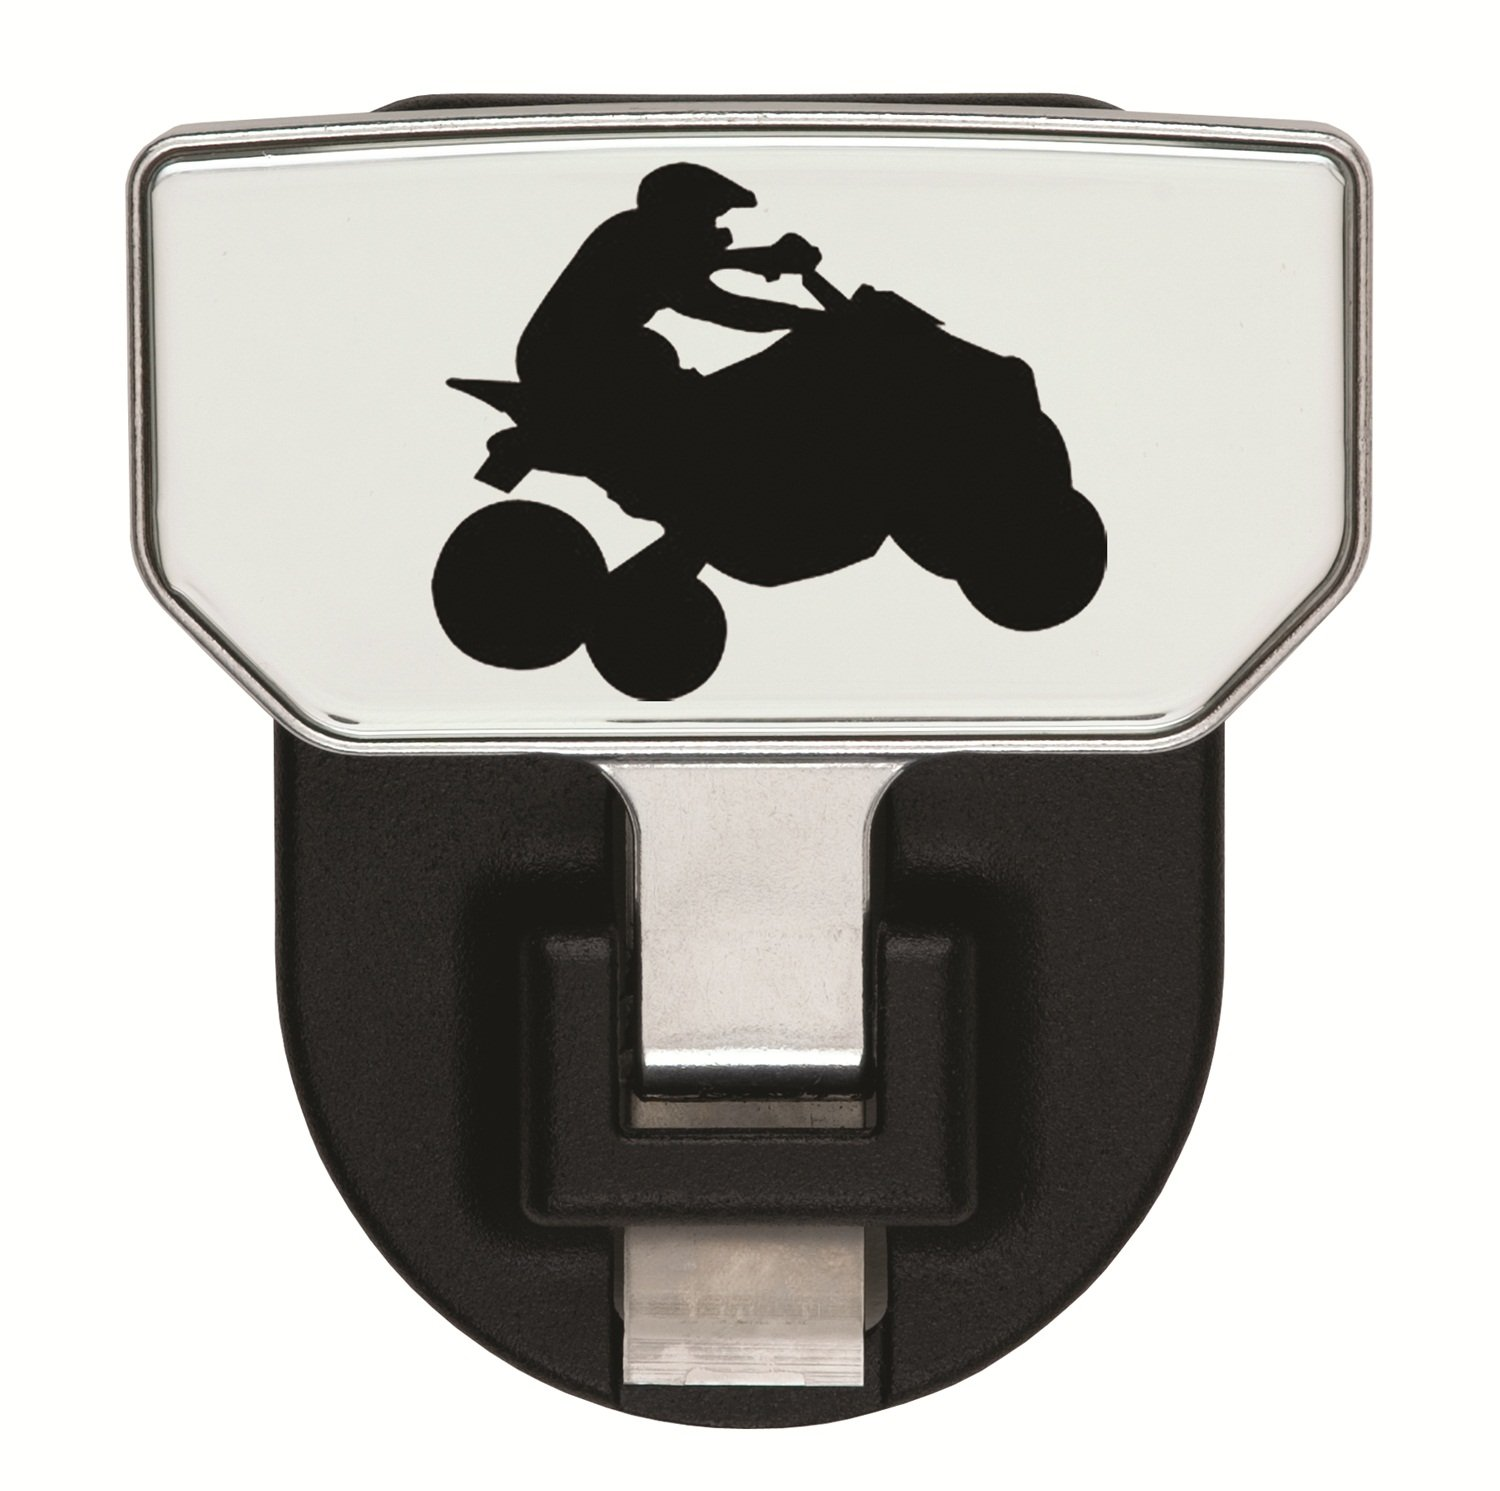 Carr's 153162 HD Tow Hook Step